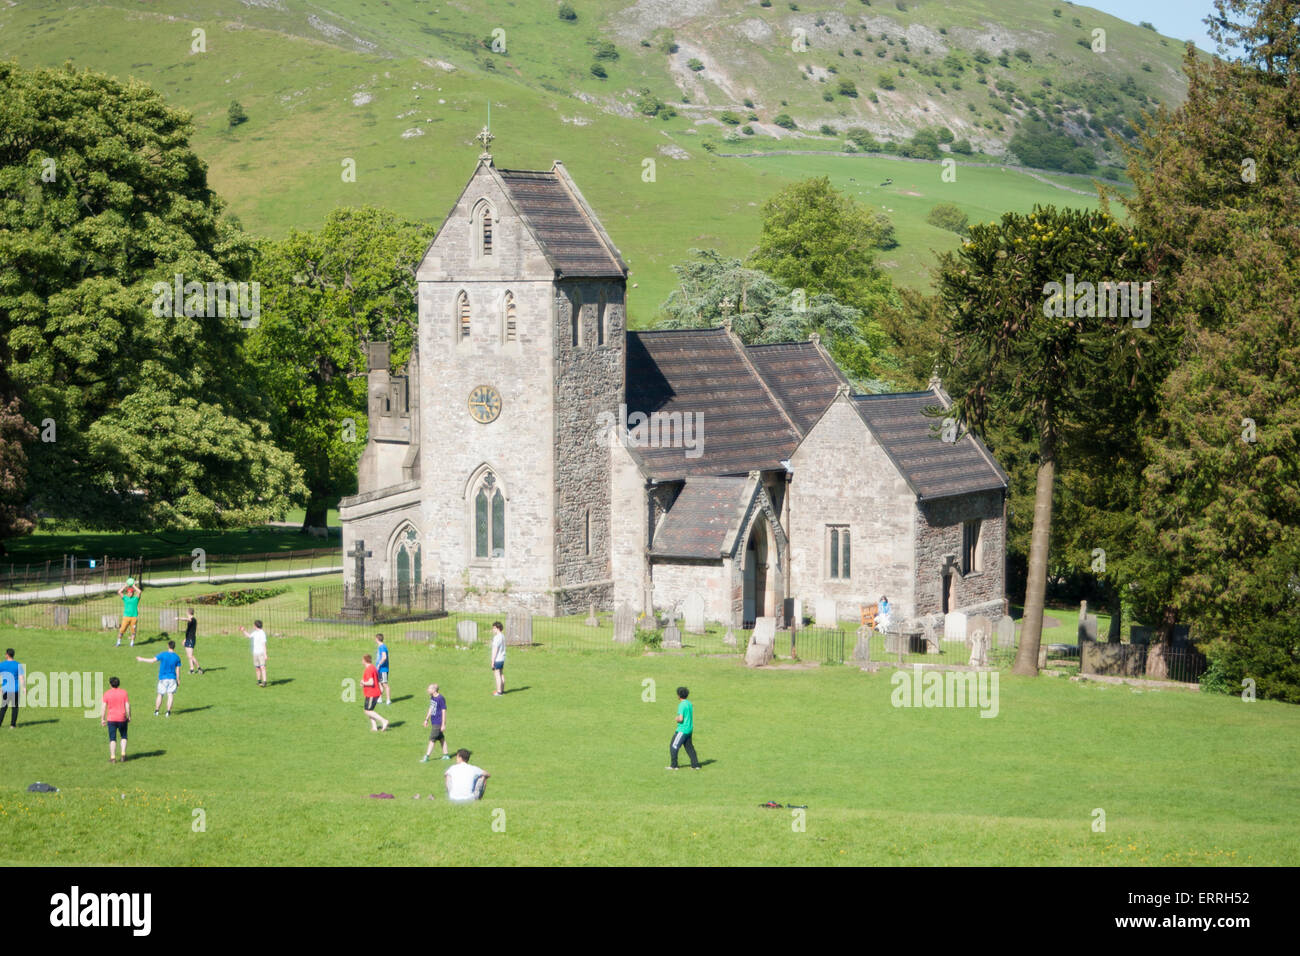 Church of the Holy Cross, viewed from the grounds of Ilam Hall, Ilam village, Staffordshire Peak District, UK - Stock Image